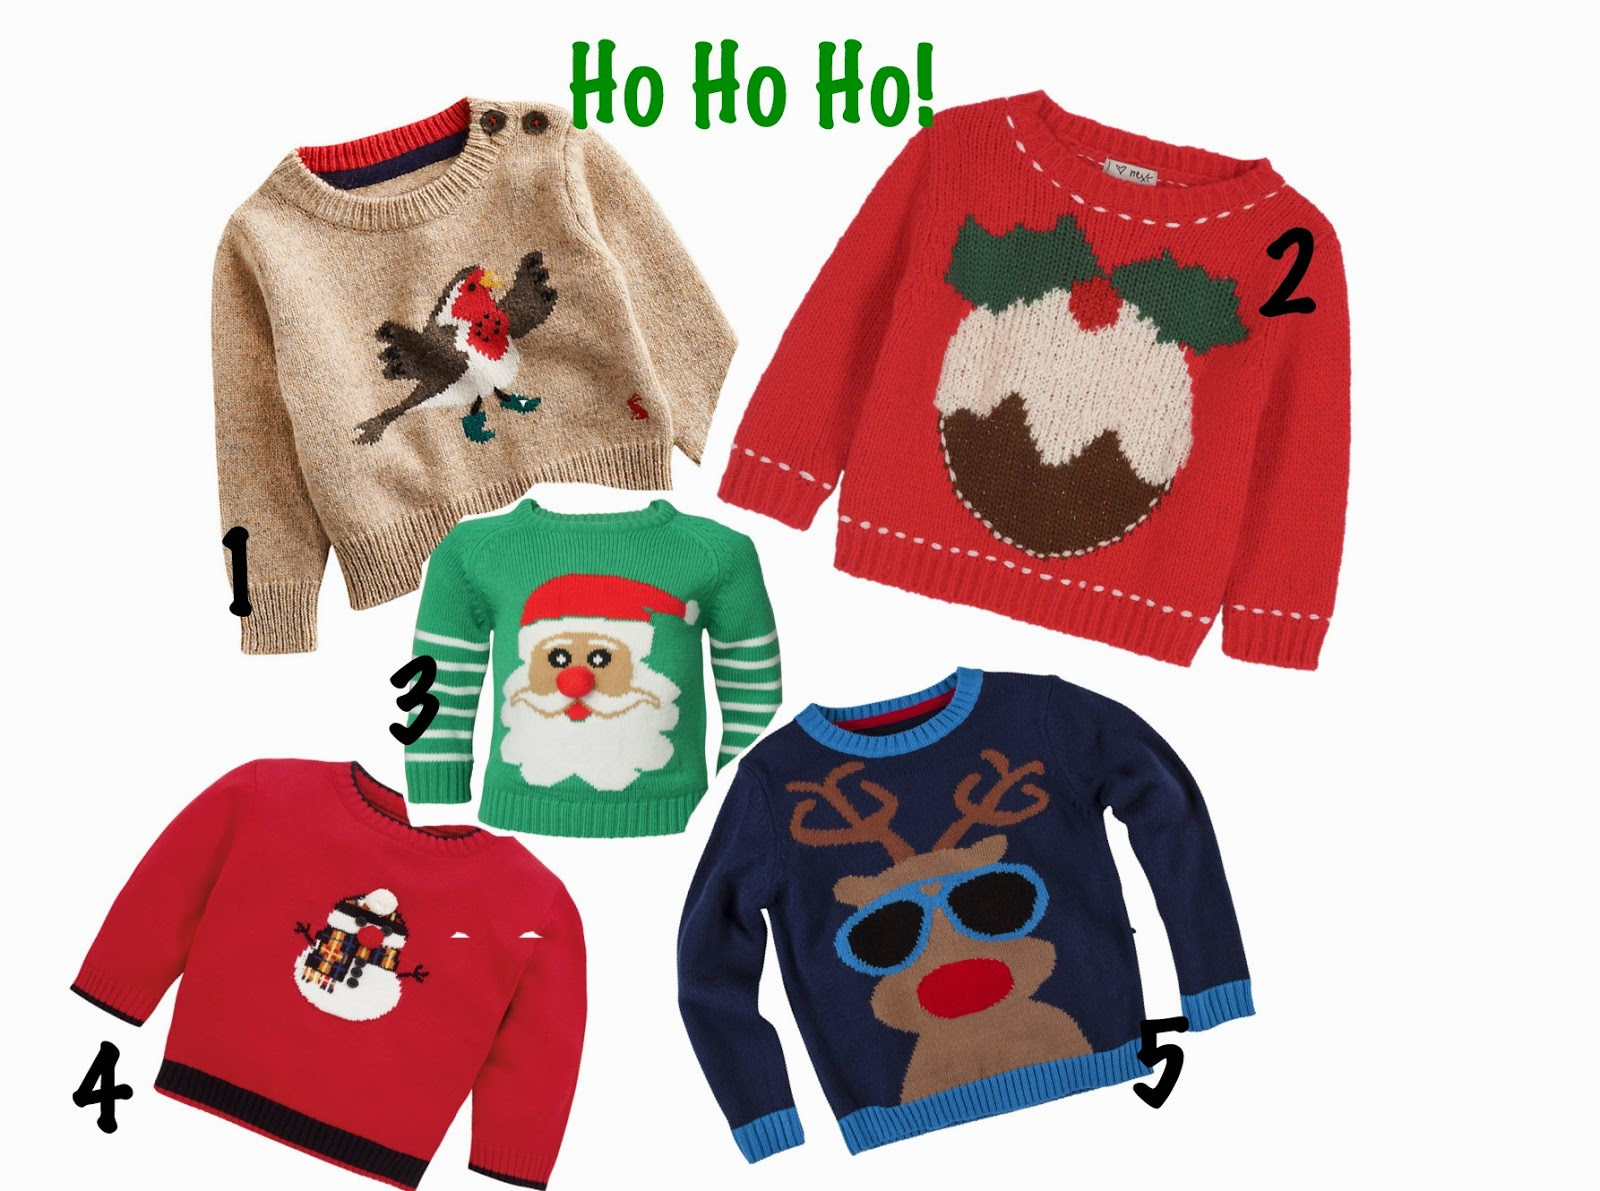 Cool Christmas jumpers for kids | V. I. BUYS